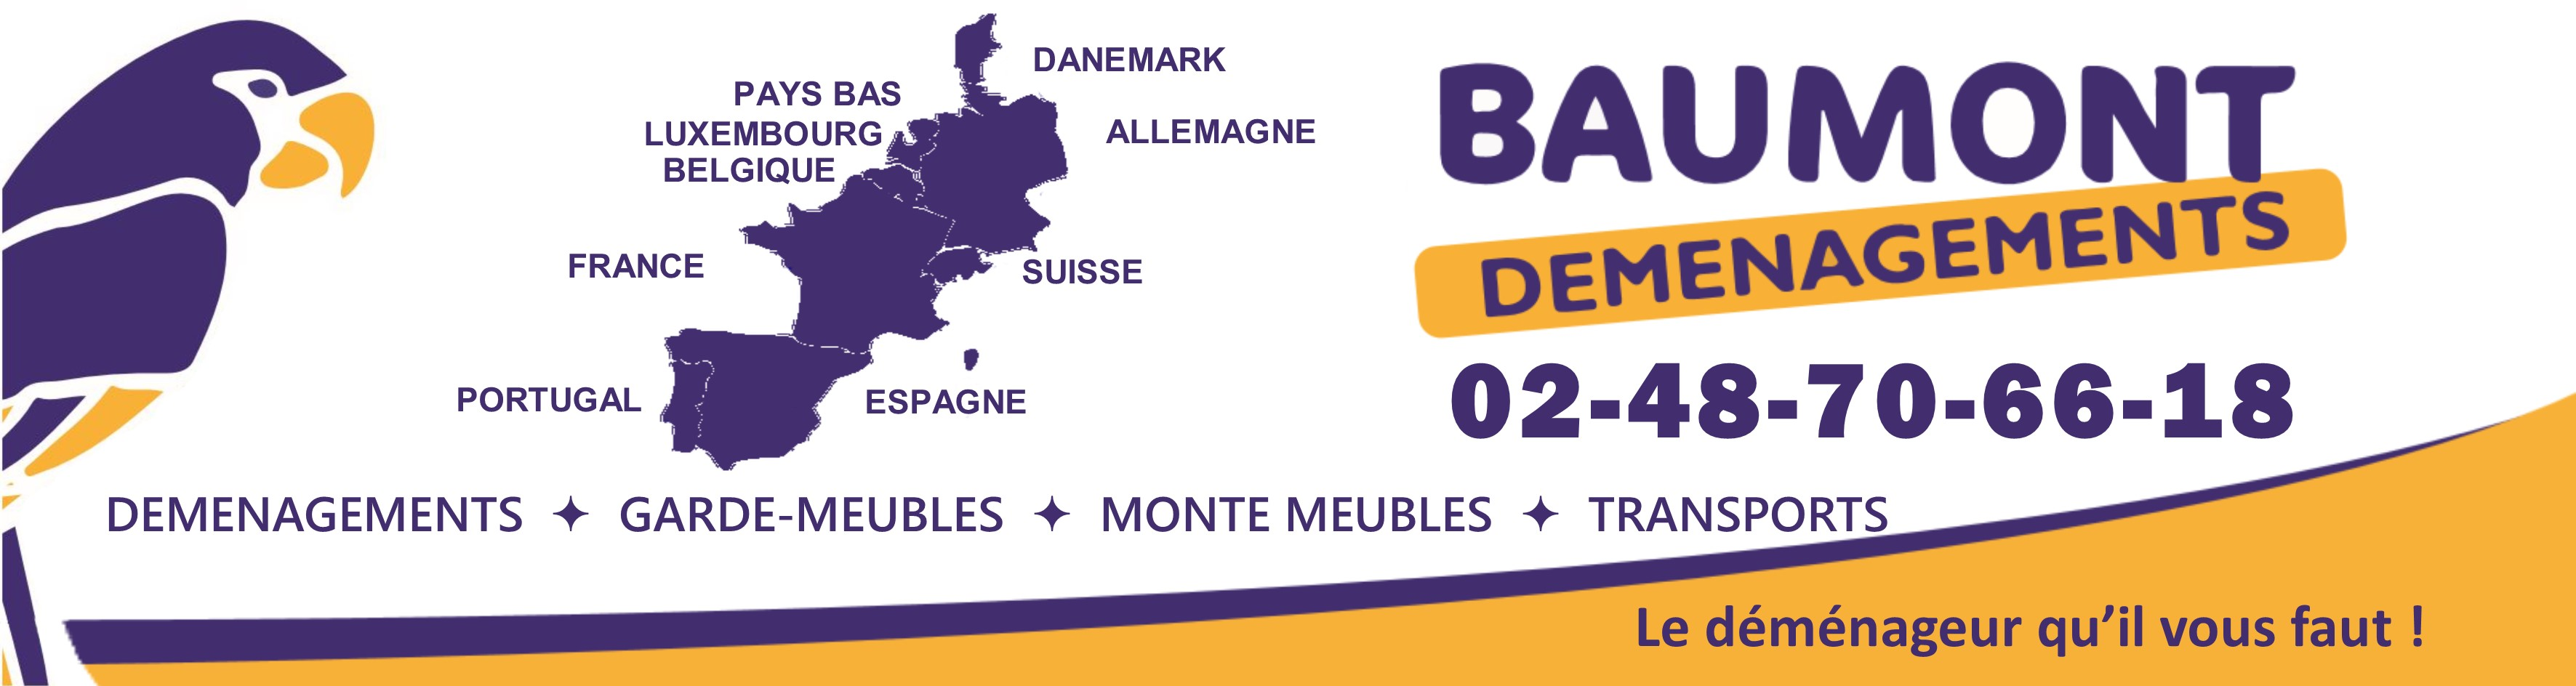 Baumont Demenagement Bourges Demenagement Bourges